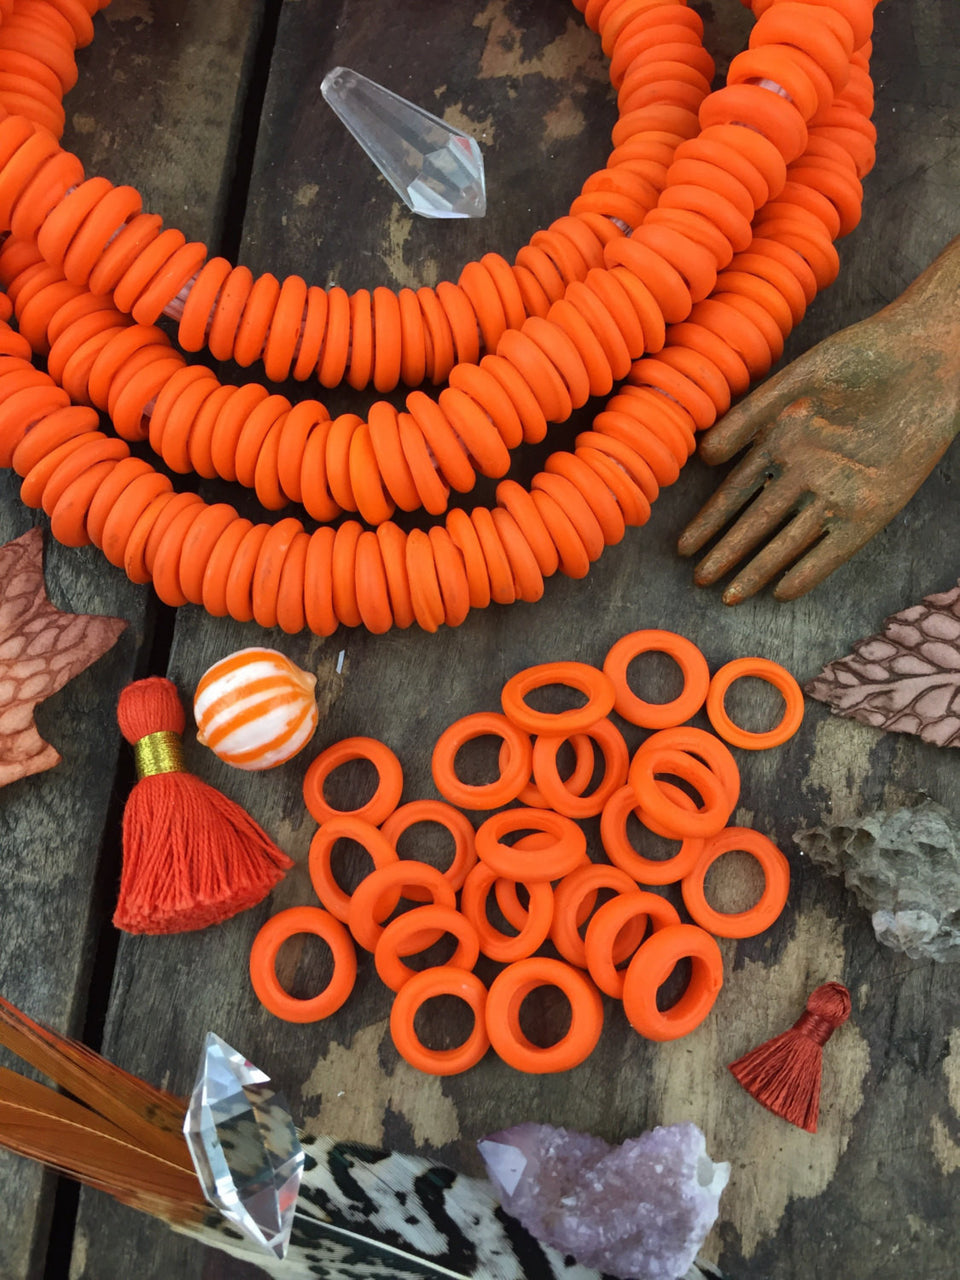 Matte Pumpkin Orange Dutch Donut Dogan Beads, Mali, Africa, Large Hole Glass Beads, Boho Tribal 11-12mm, Mermaid Beachy Jewelry Making, 10pc - ShopWomanShopsWorld.com. Bone Beads, Tassels, Pom Poms, African Beads.